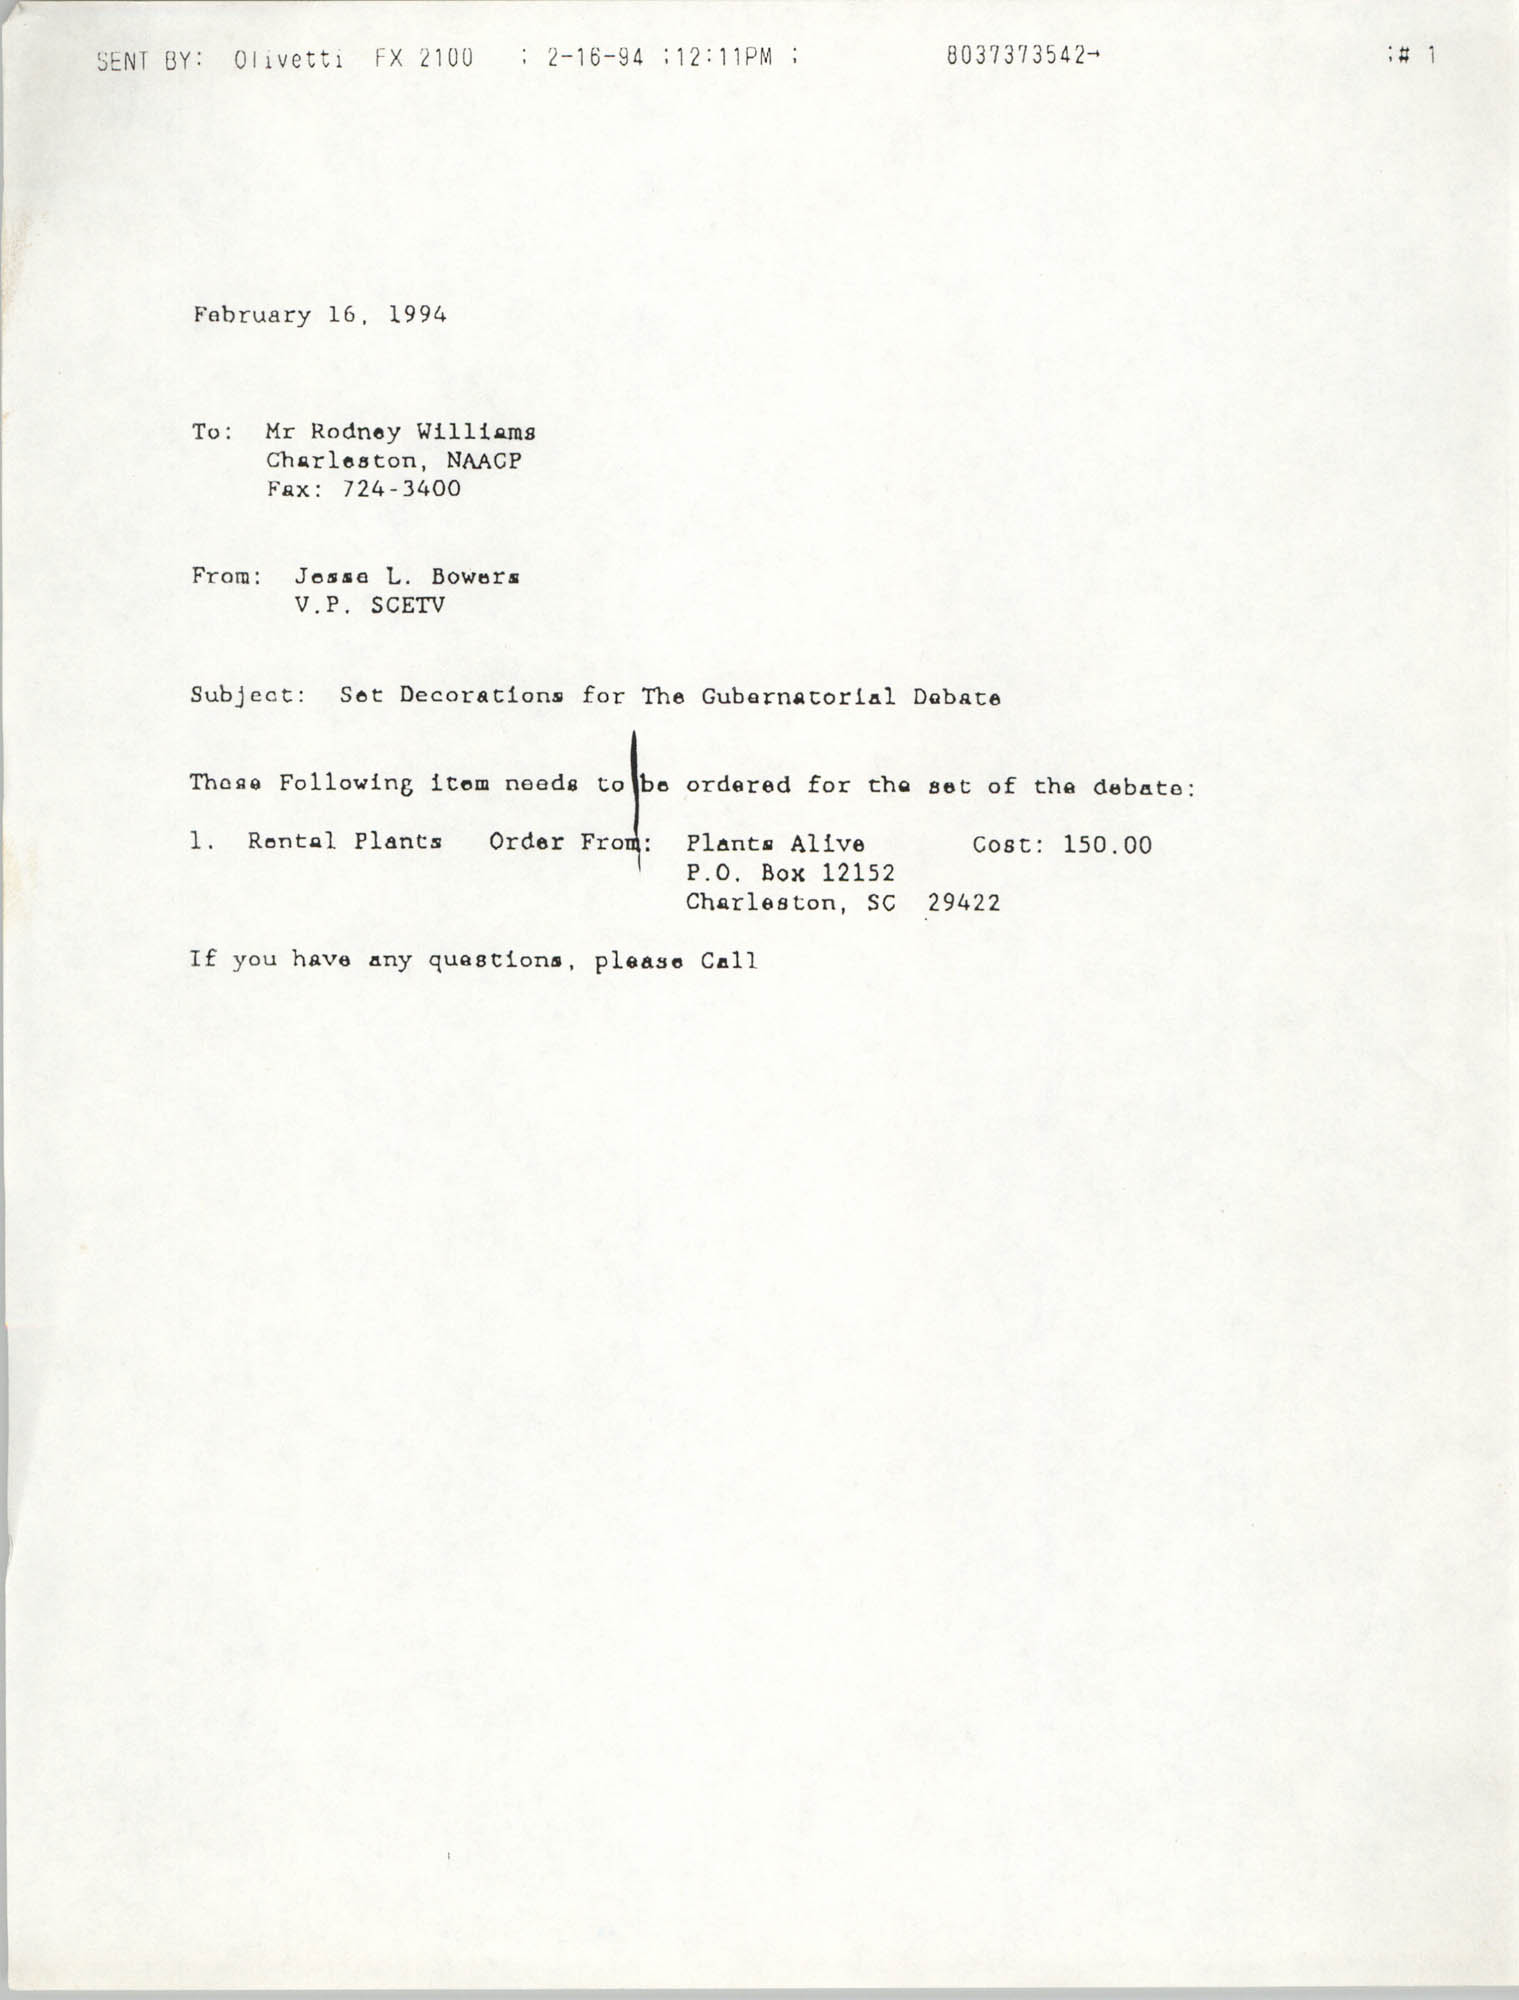 Letter from Jesse L. Bowers to Rodney Williams, February 16, 1994